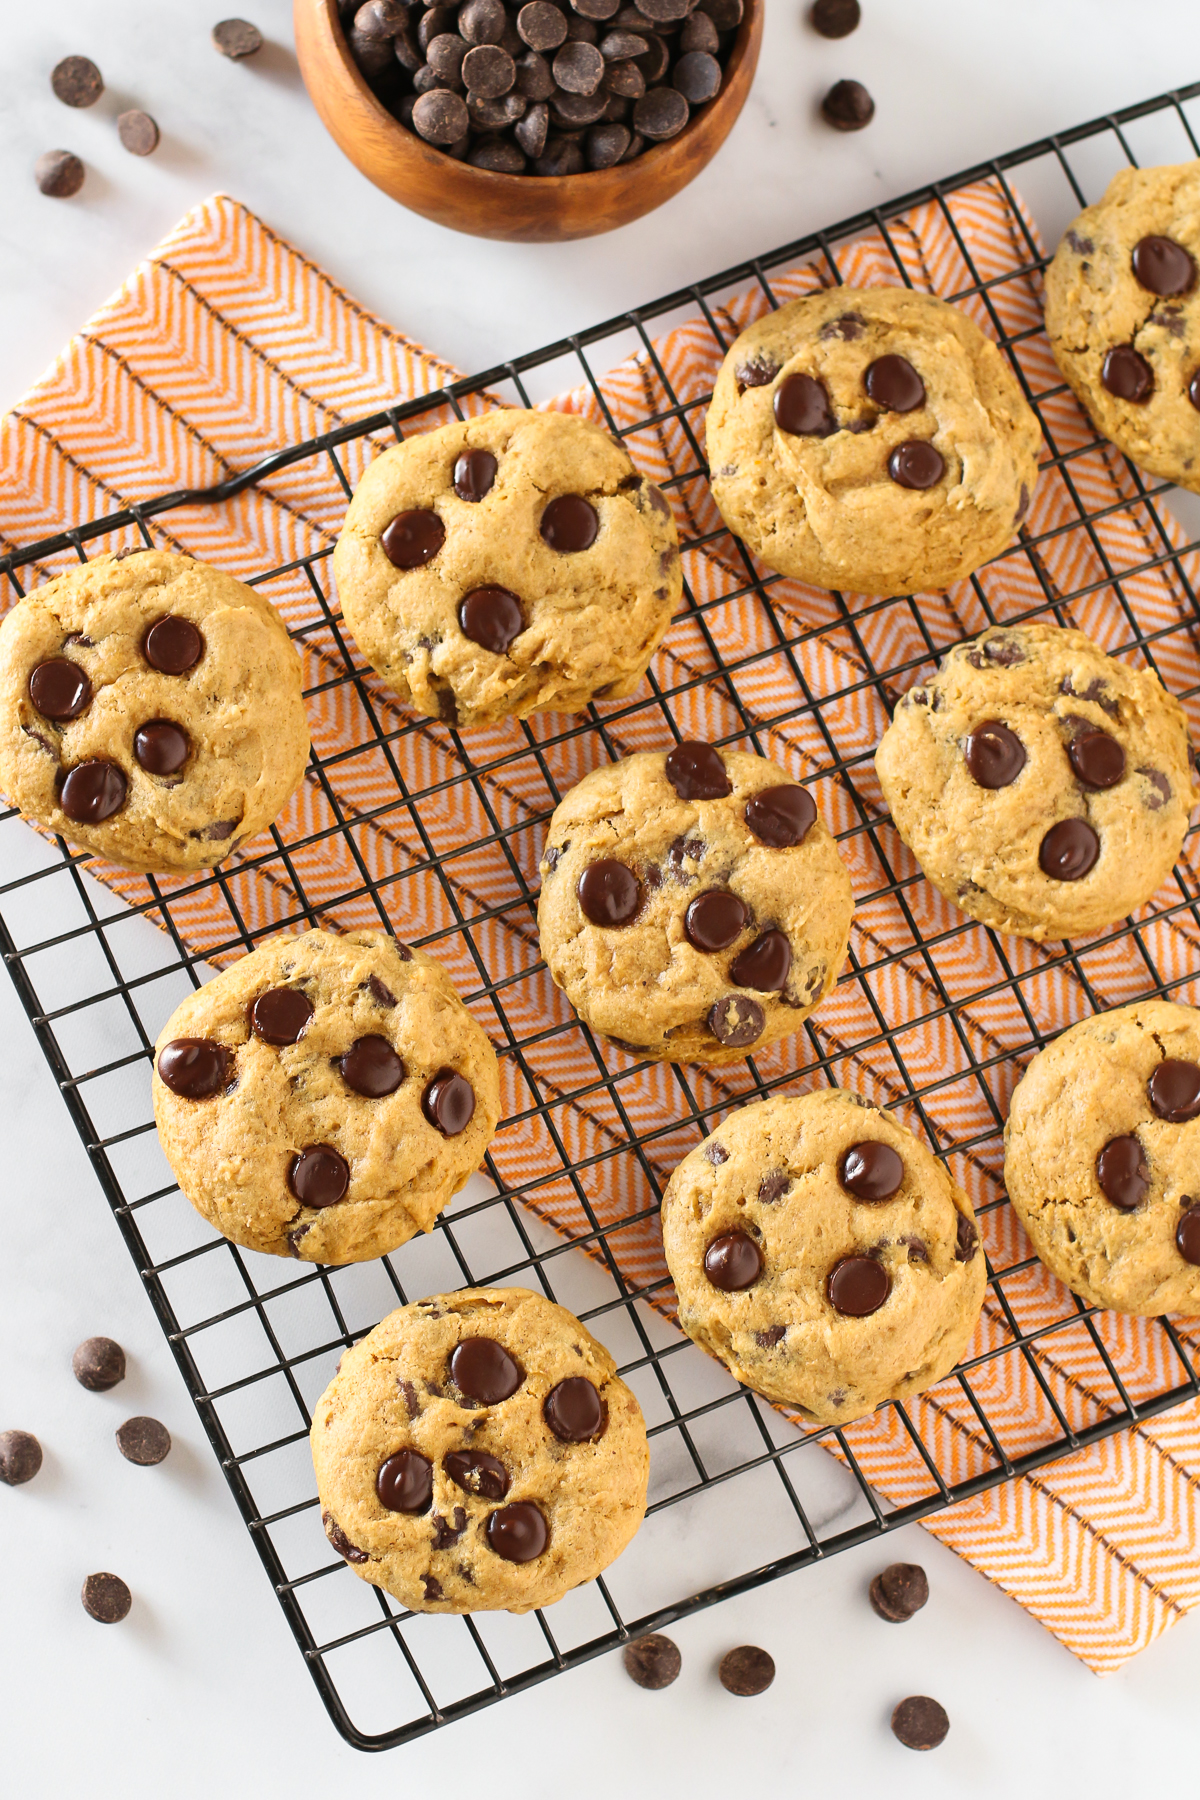 Gluten Free Vegan Pumpkin Chocolate Chip Cookies. Pumpkin, chocolate, spice and everything nice. That's what these allergen free cookies are made of!